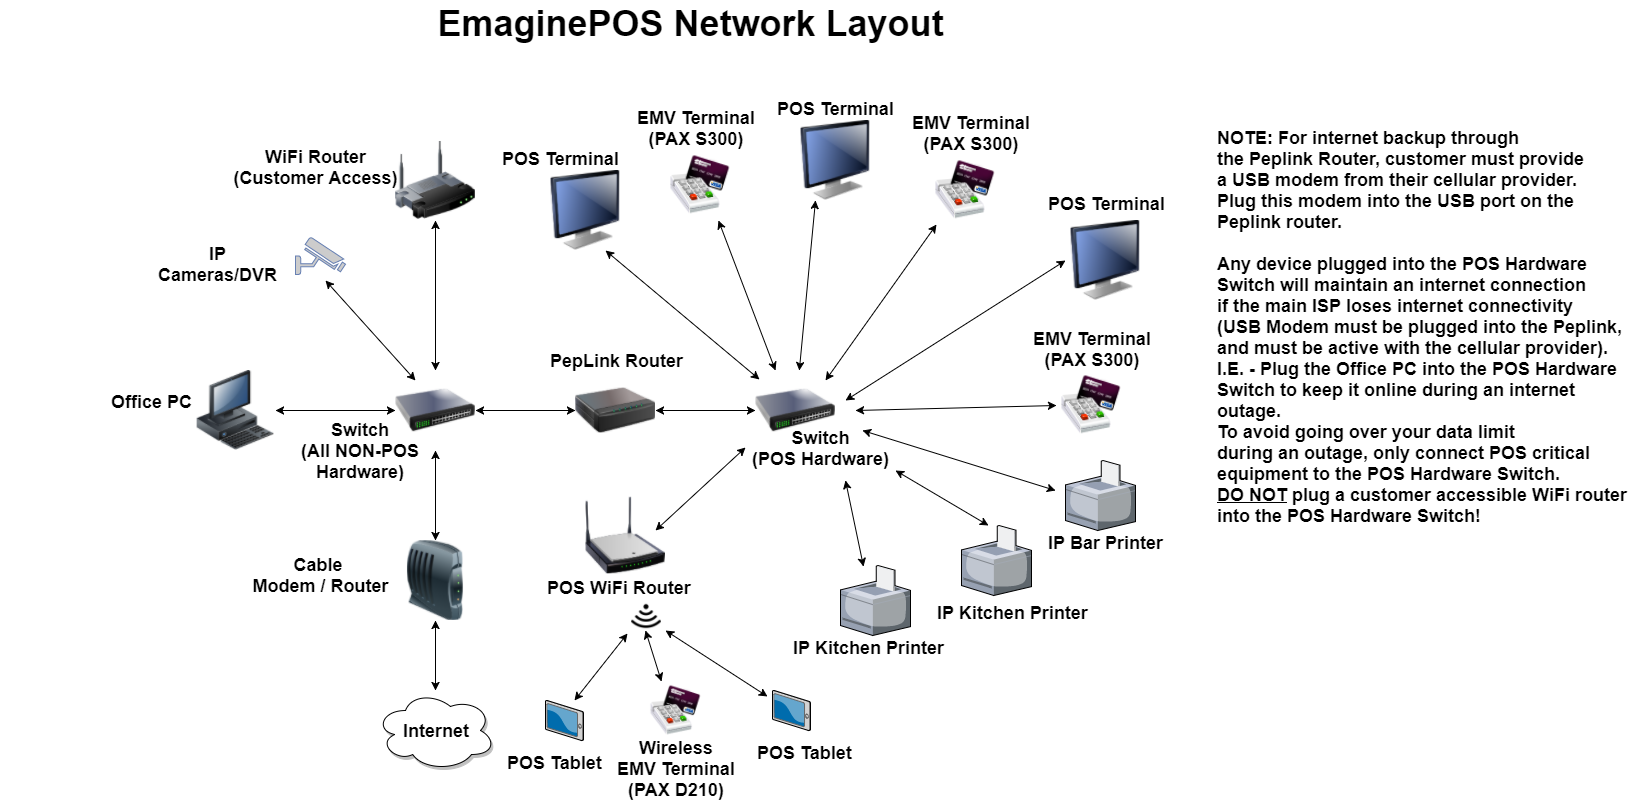 Network Diagram / Wiring Diagram - EmaginePOS Help Docs